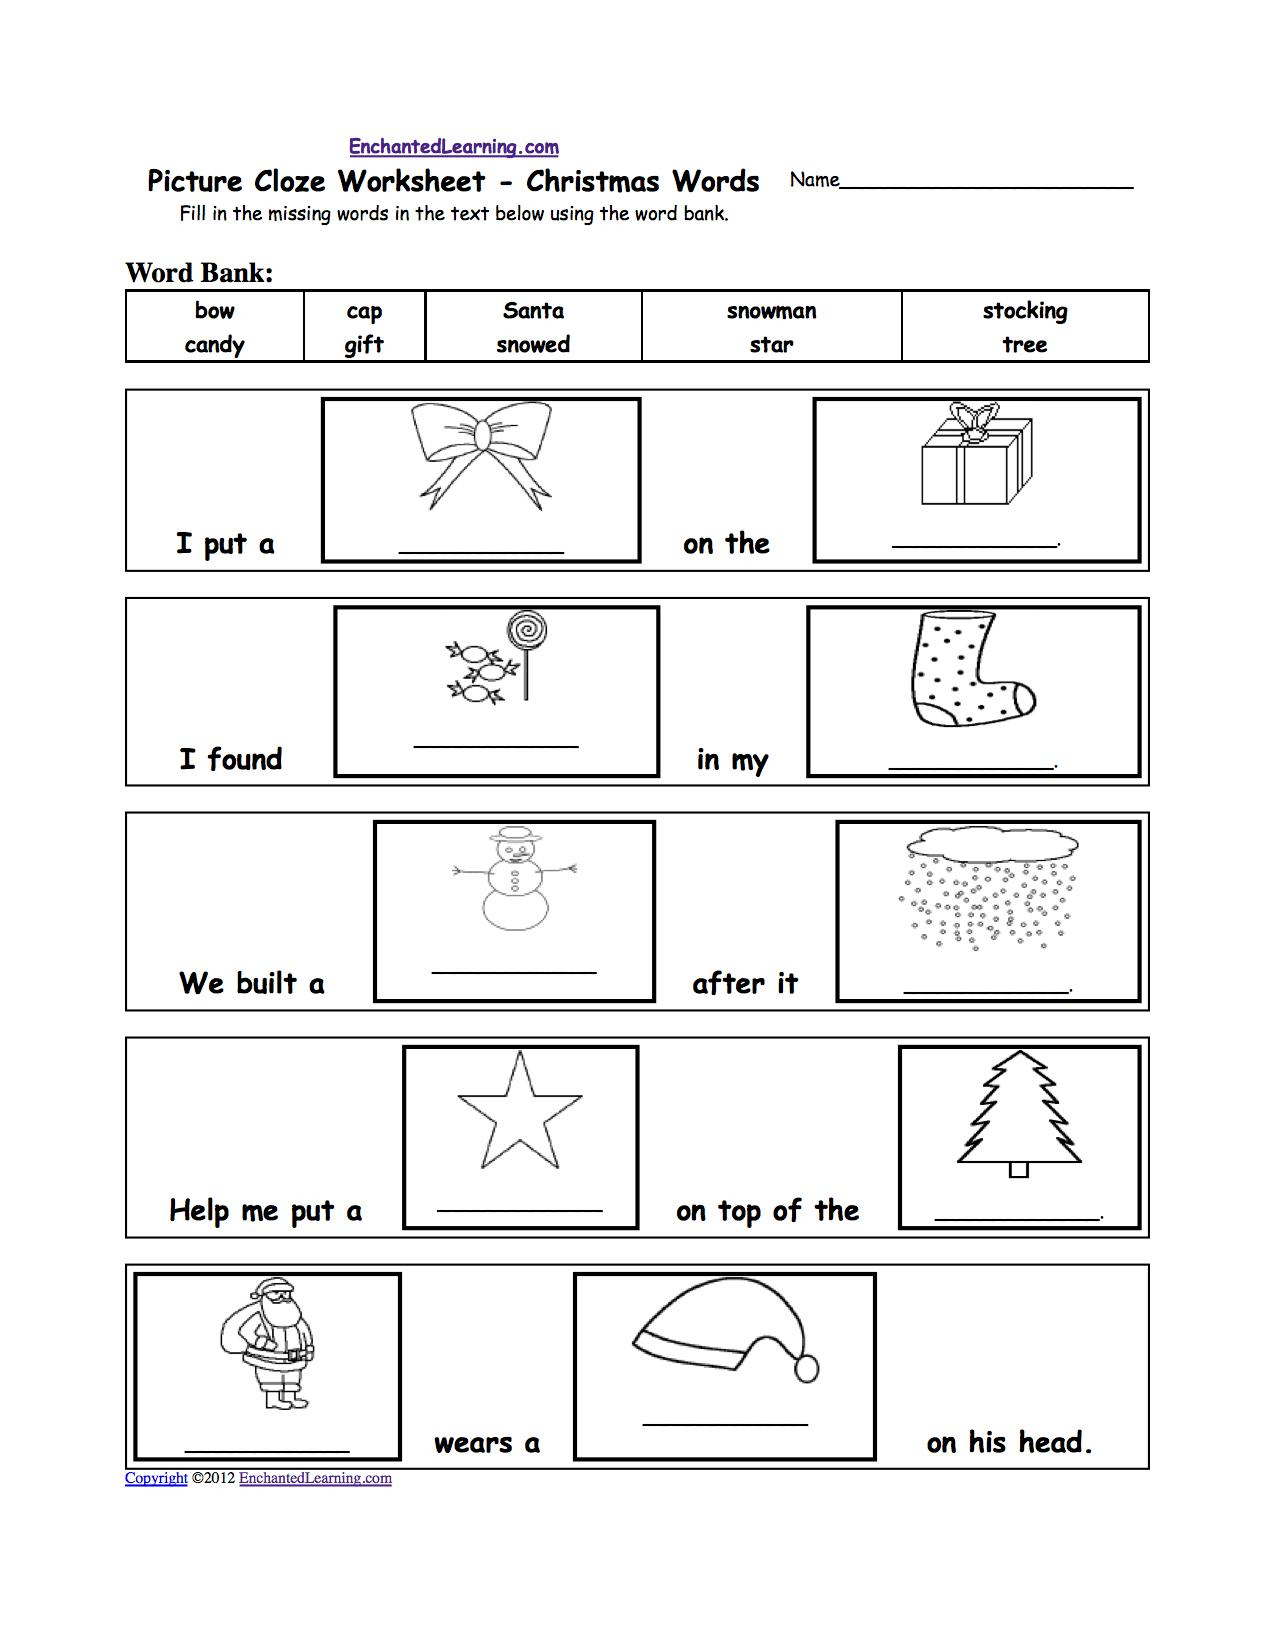 Puzzles For 4 Year Olds Printable Objects Visual Printable - Printable Puzzle For 4 Year Old